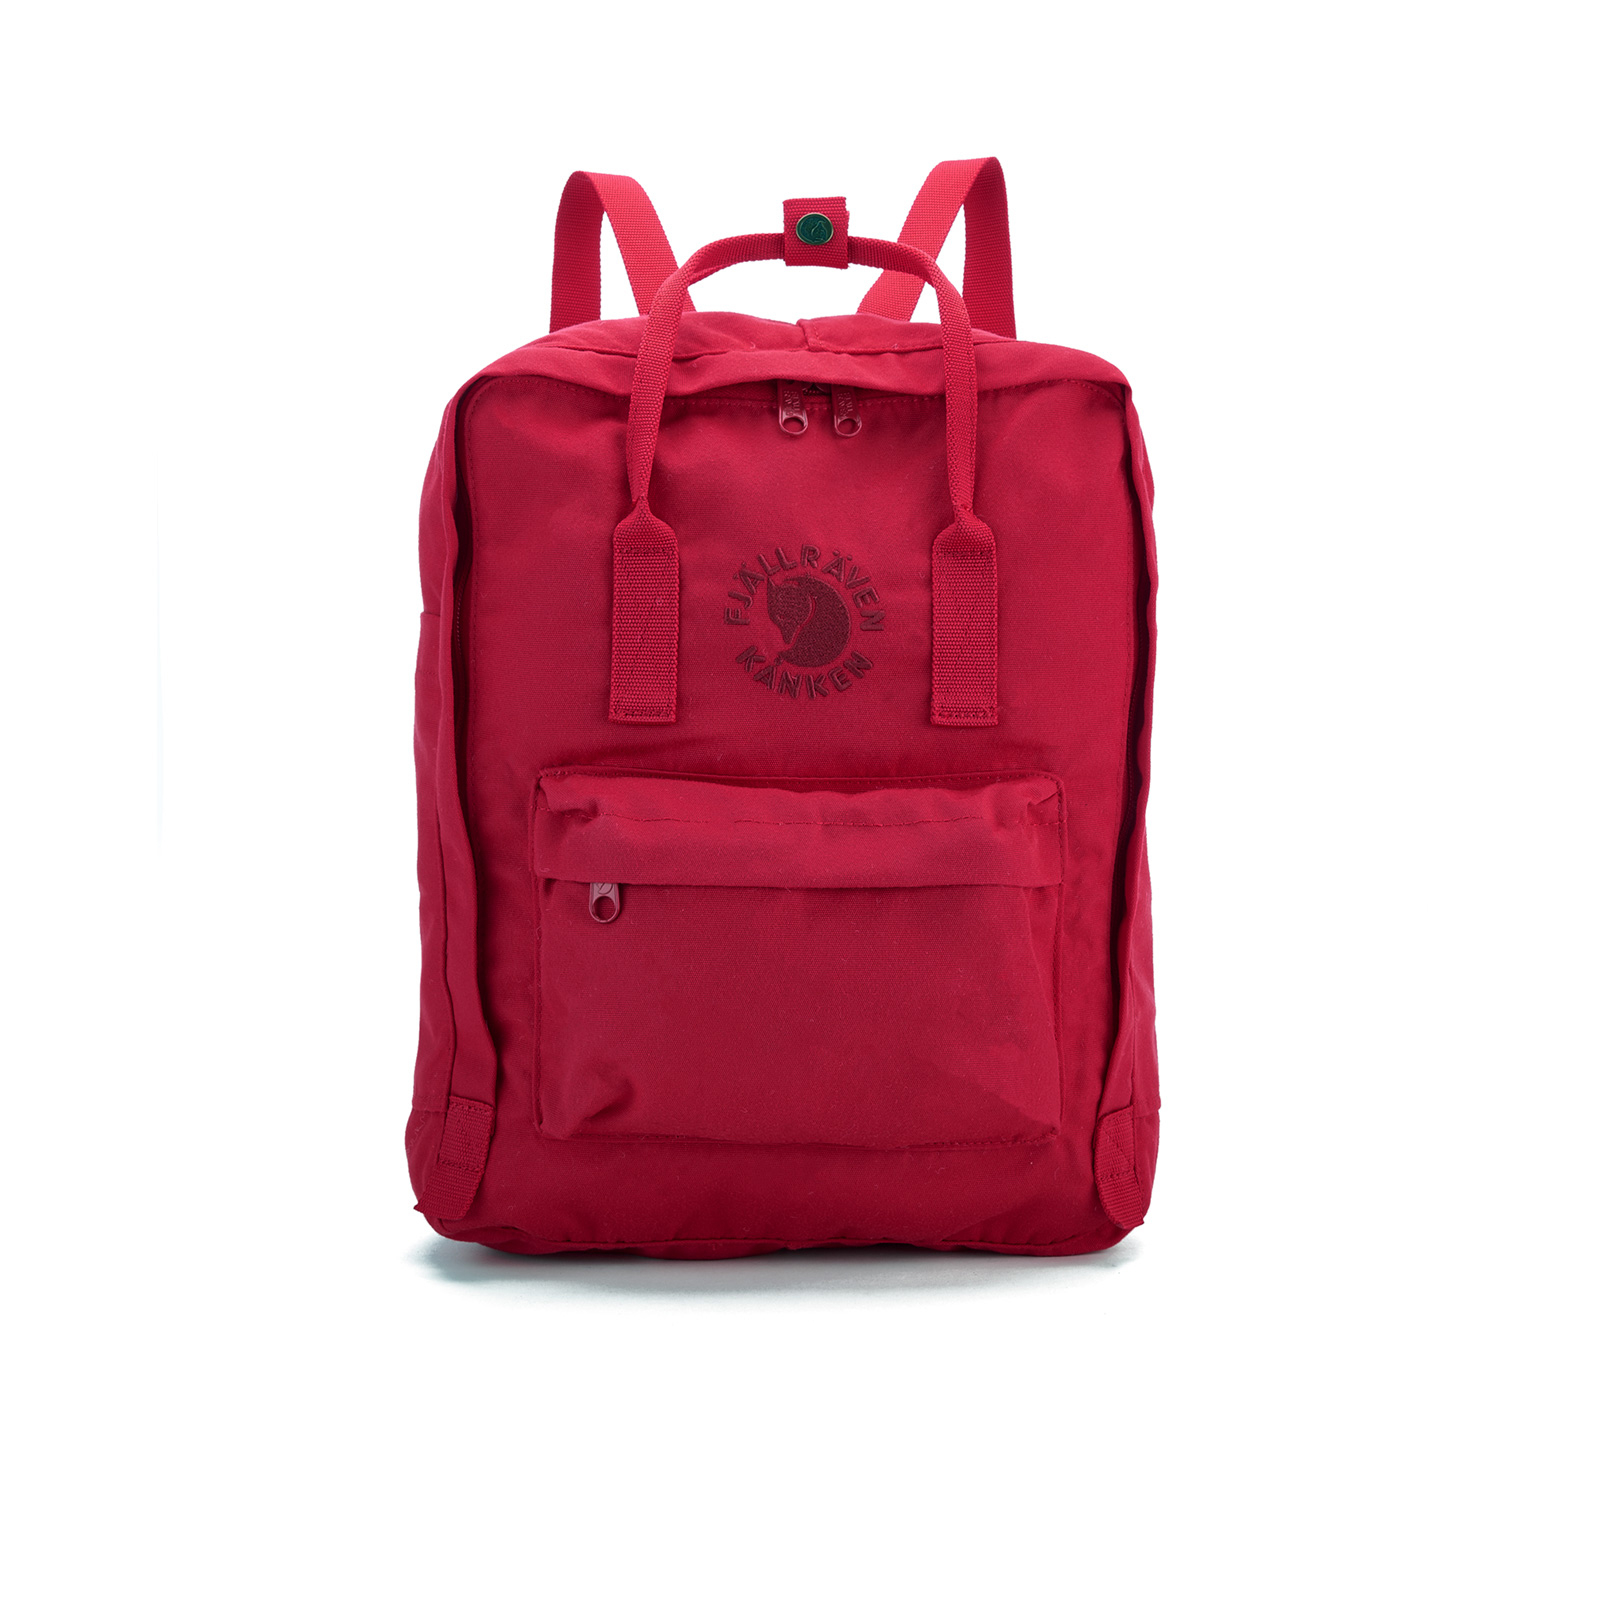 no sale tax meet authentic quality Fjallraven Re-Kanken Backpack - Red